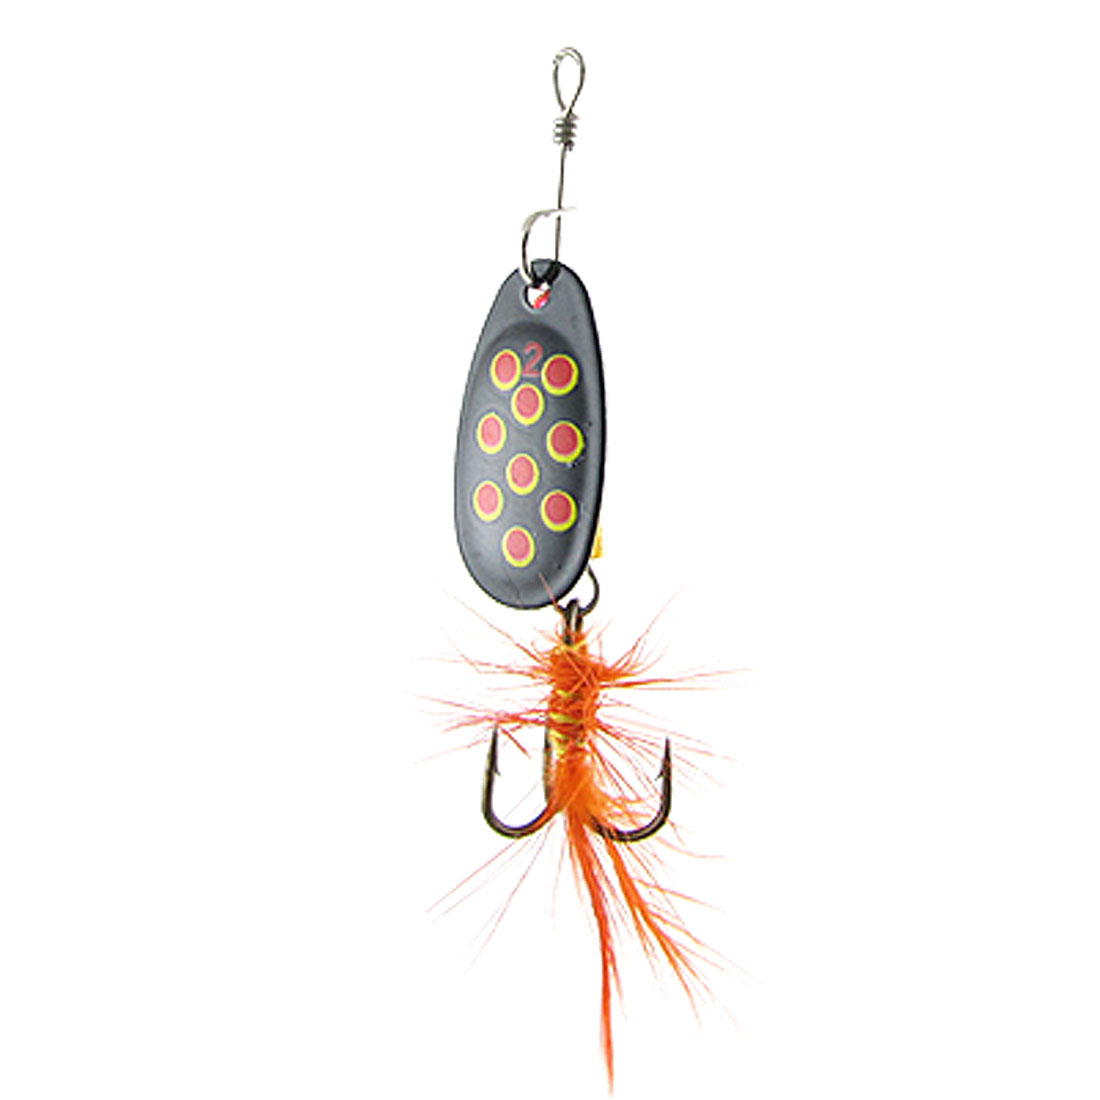 Angling Tackle Metal Lure Fishing Treble Hook w Orange Feather